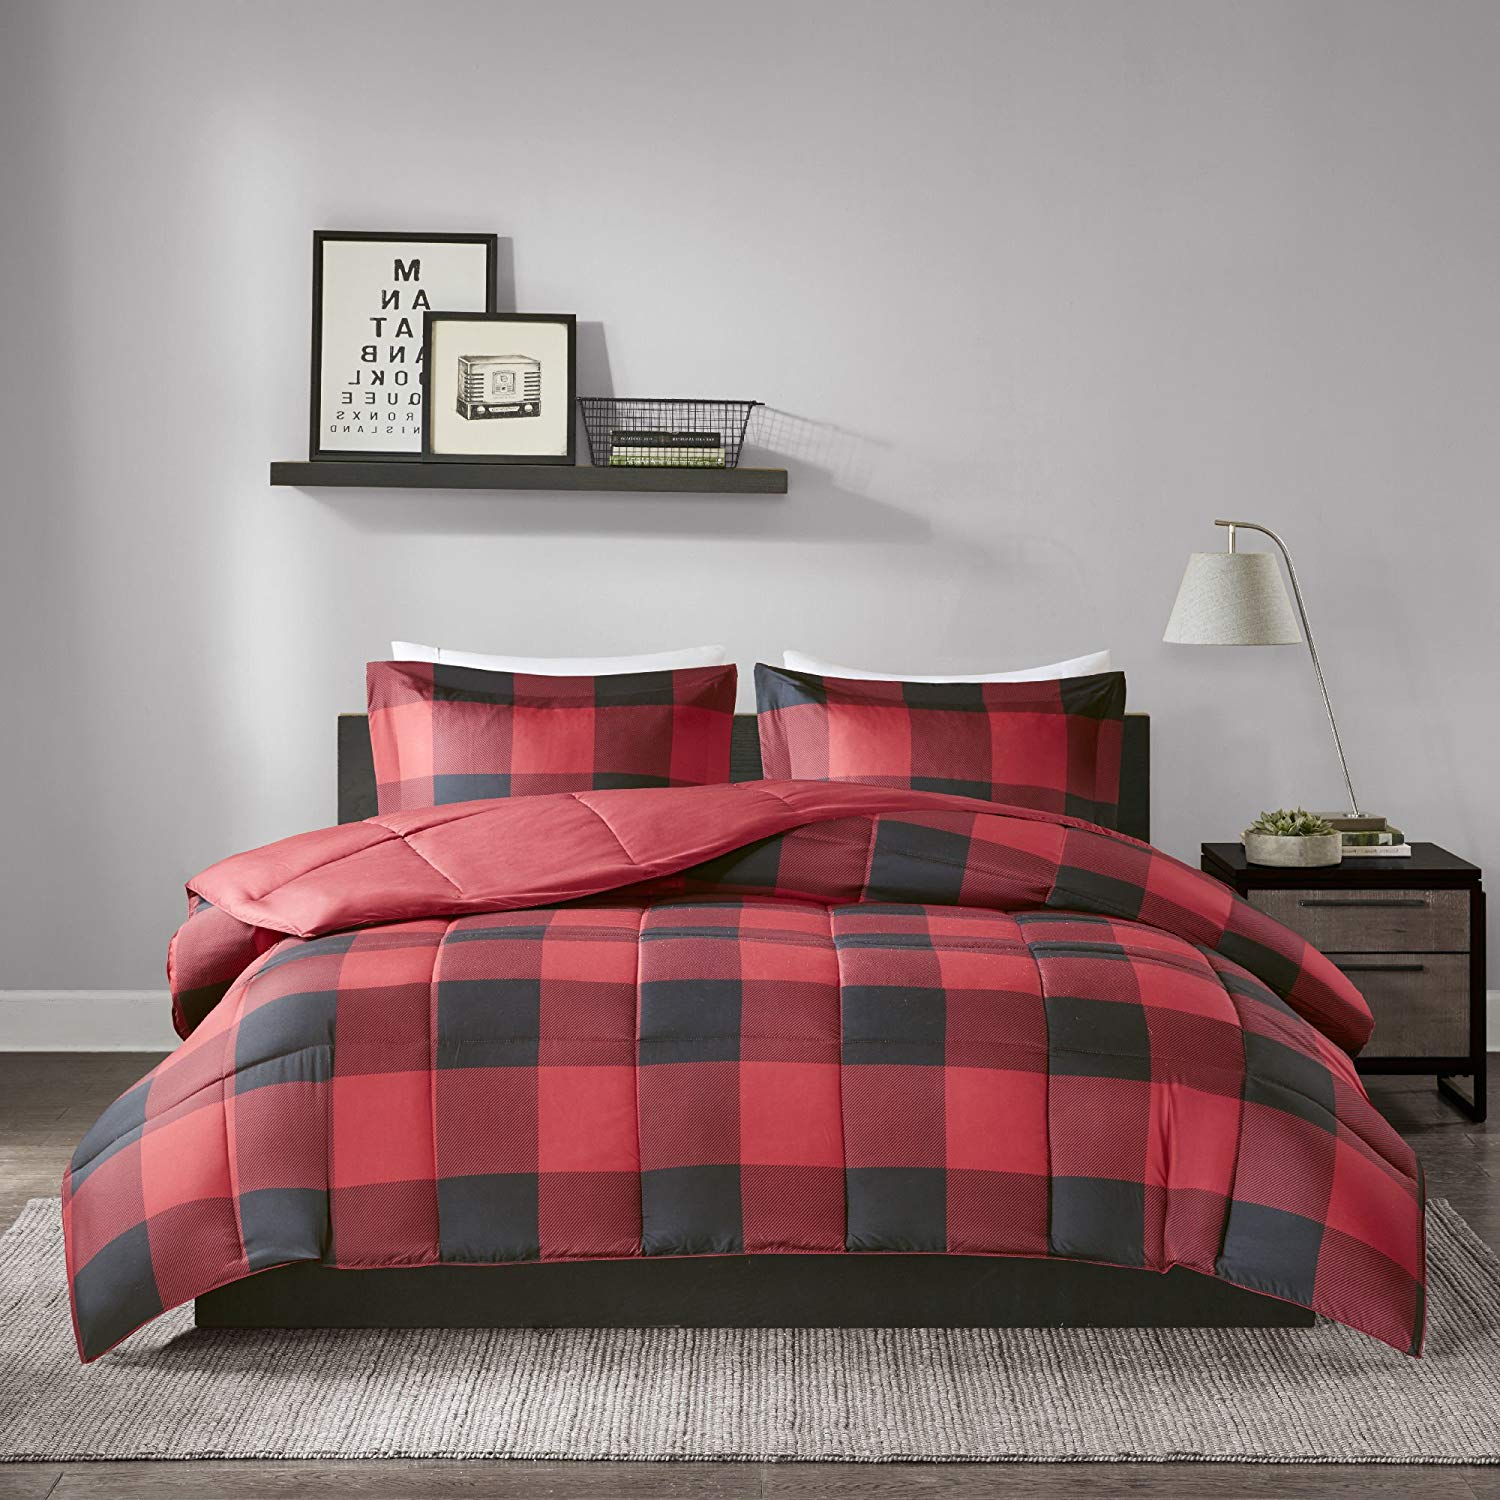 MPN 3 Piece Black Red Plaid Comforter King/Cal King Set, Cabin Themed Bedding Lumberjack Pattern Squares Lodge Rustic Cottage Tartan Checkered Checked Lightweight, Microfiber